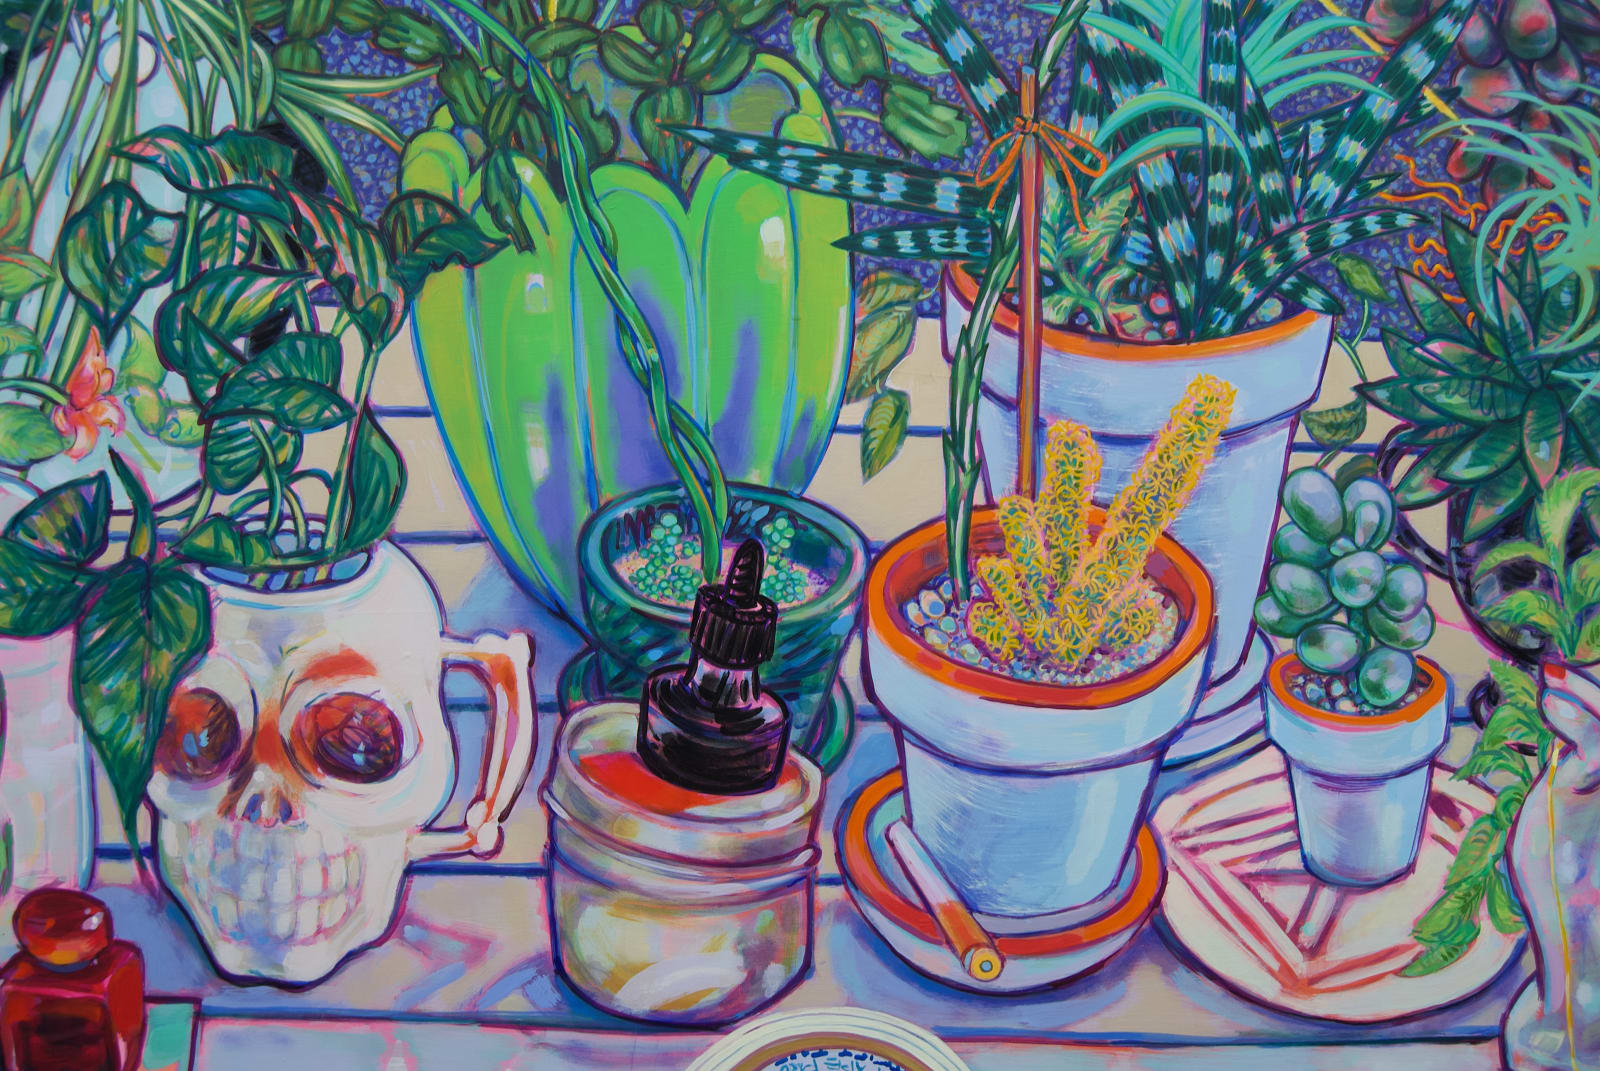 23 September 2021 Hope Gangloff's September Plant Report appears in the latest New York Review of Books Read More